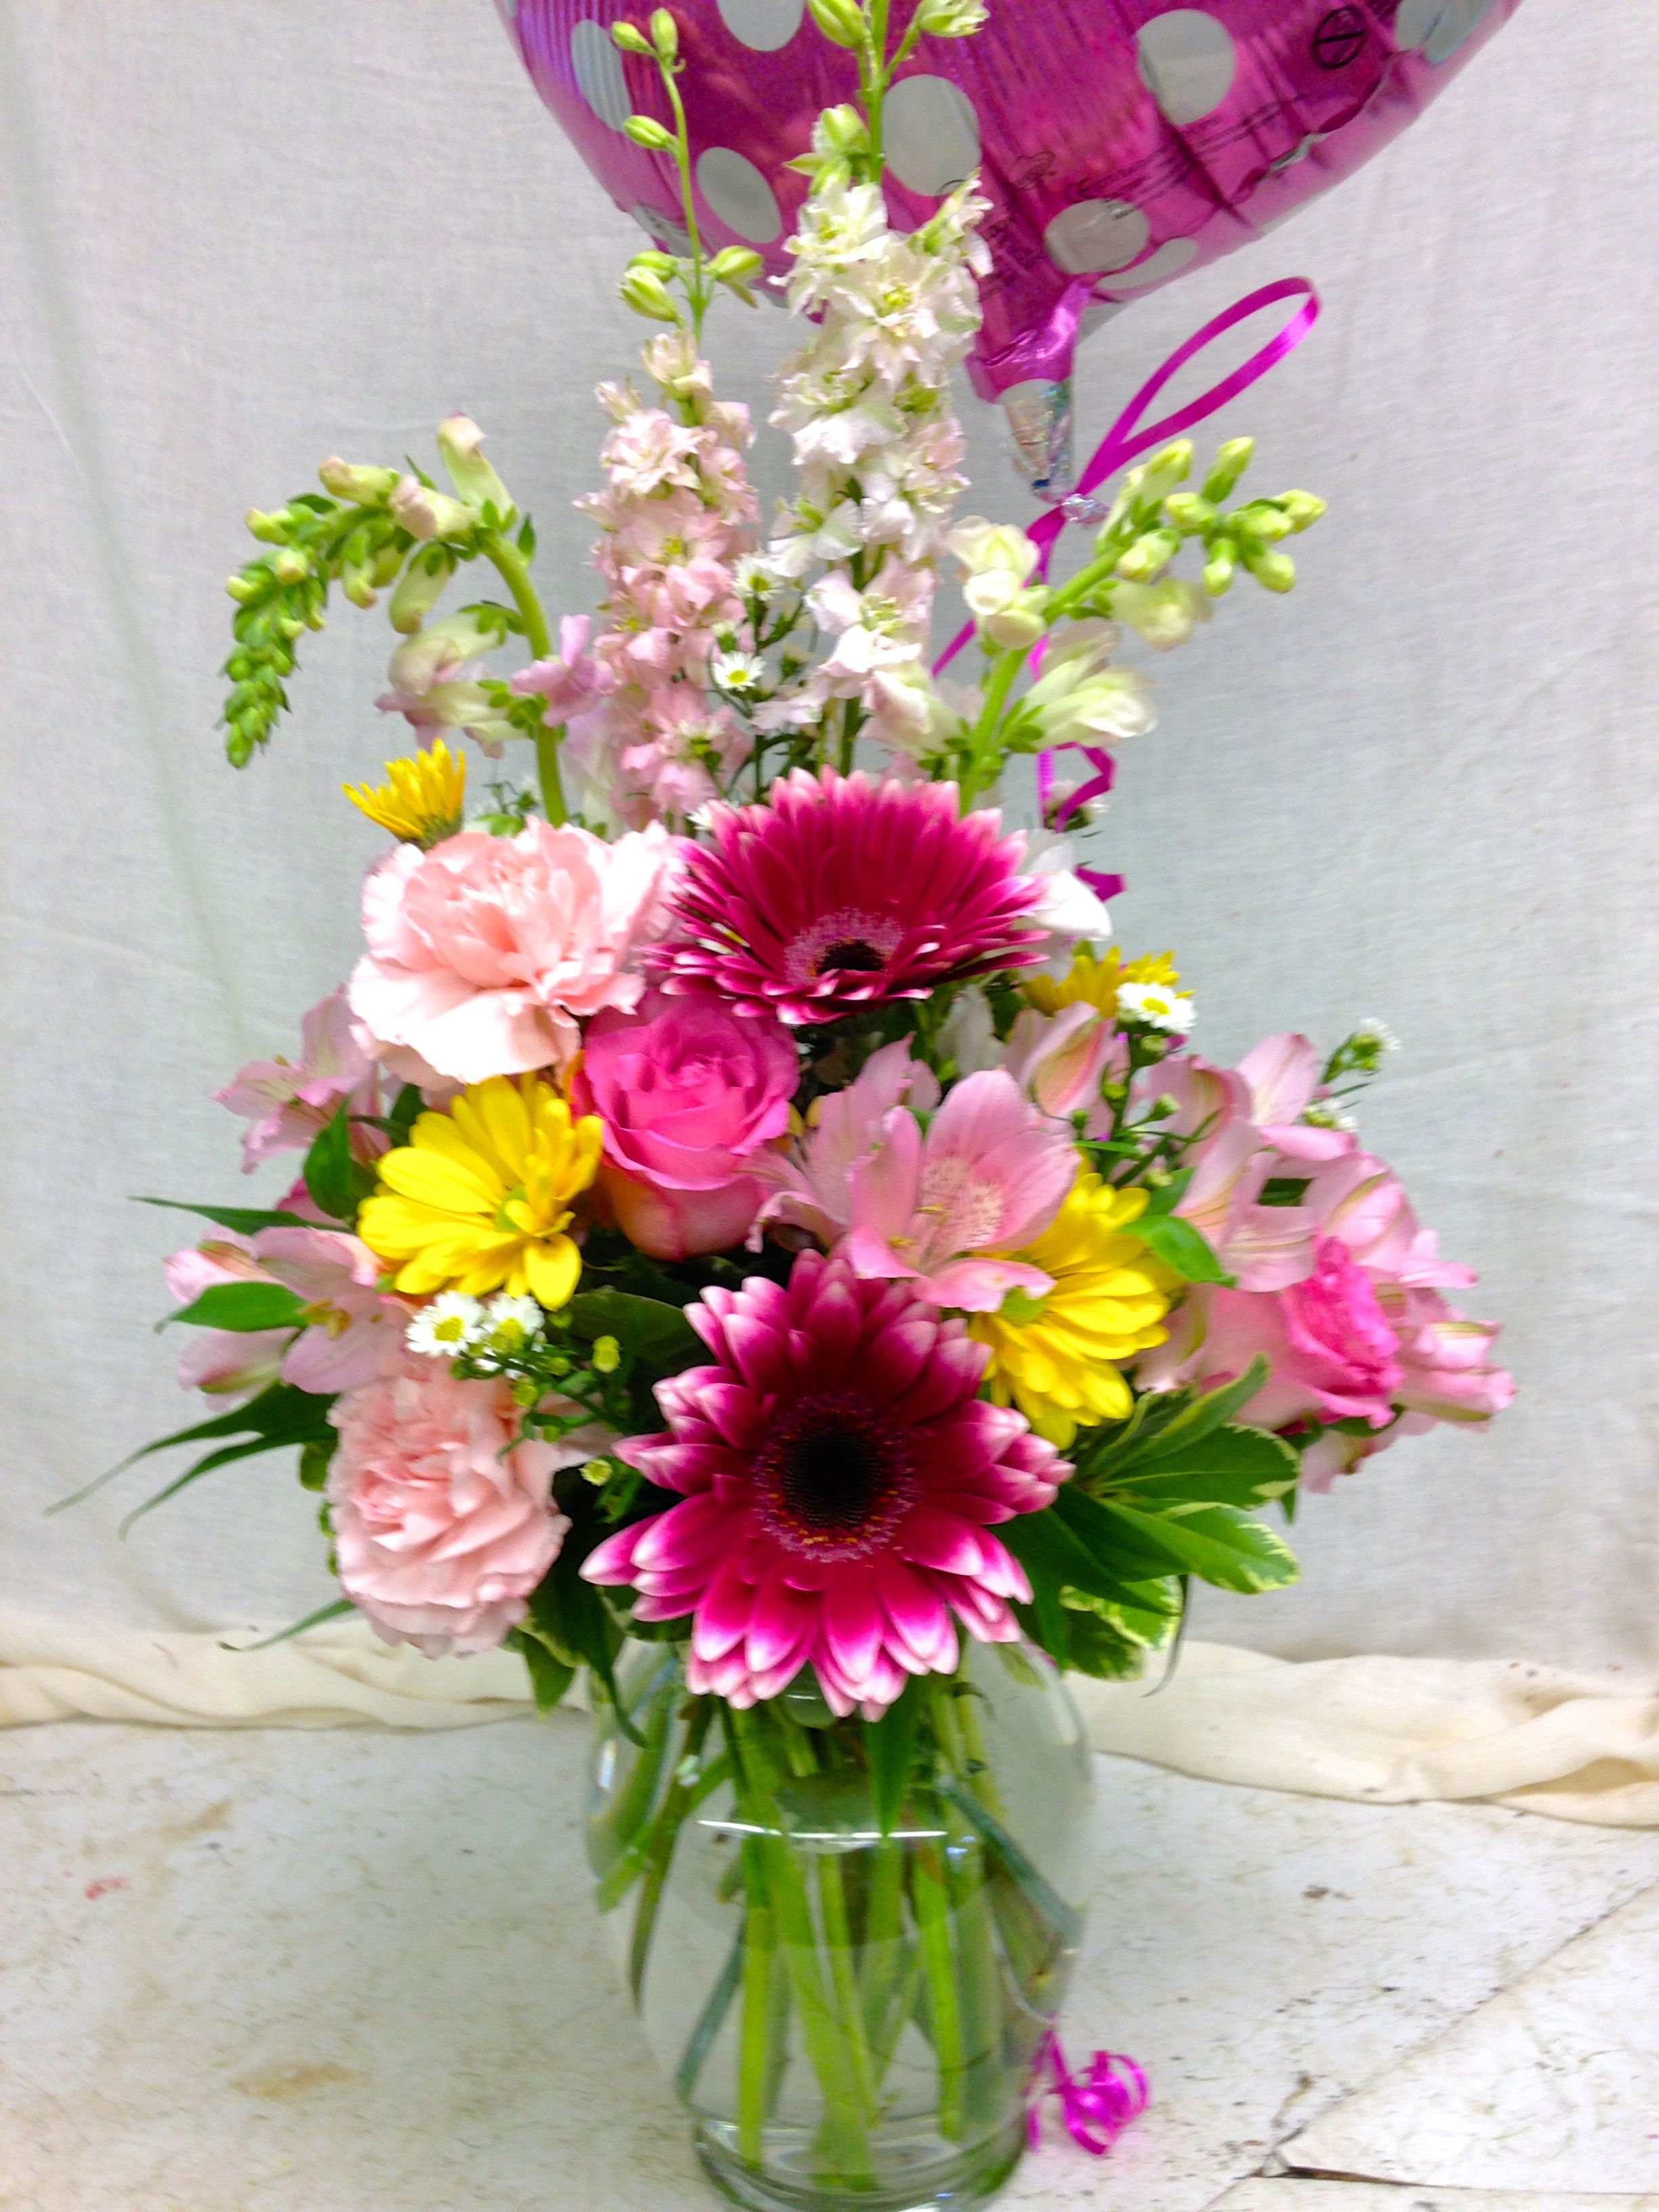 Gerber Daisies Daisies Roses And Carnations Flower Arrangements Daisy Centerpieces Flower Vases